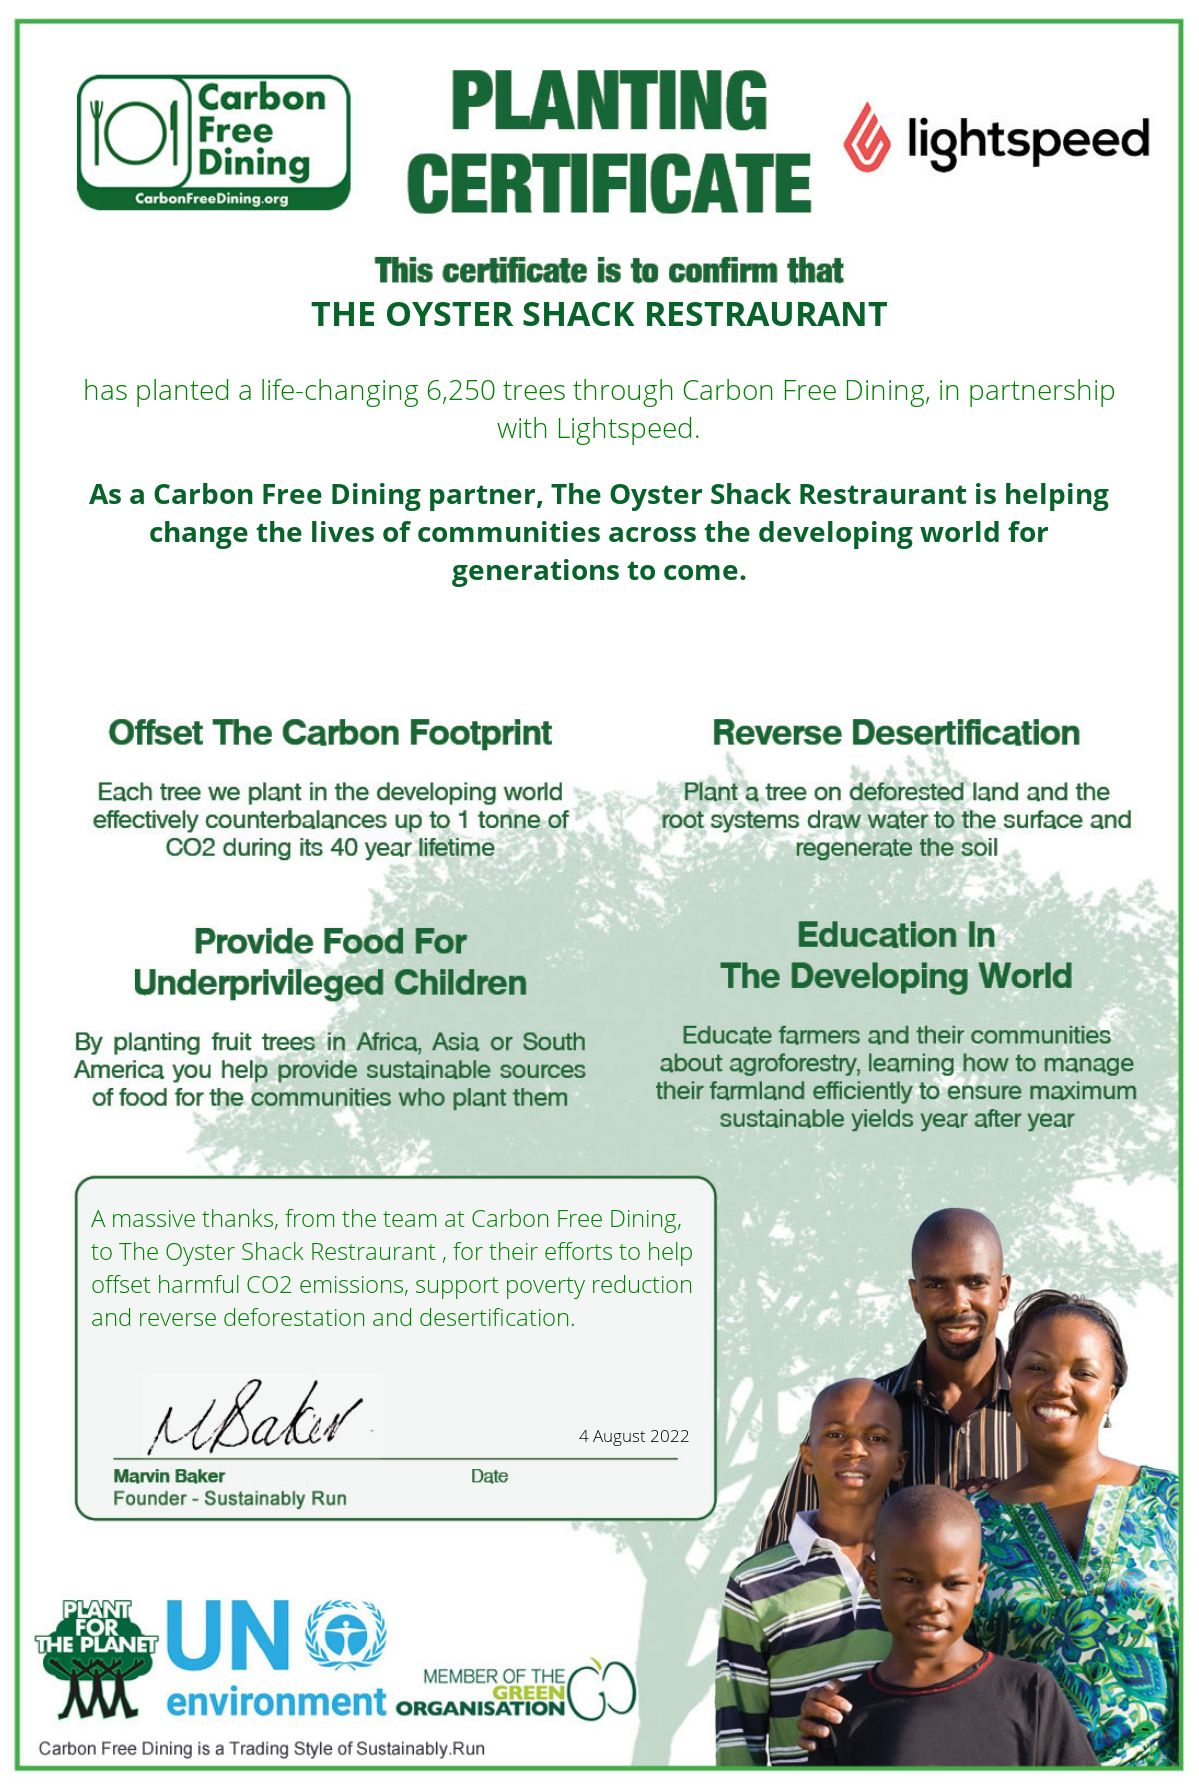 The Oyster Shack